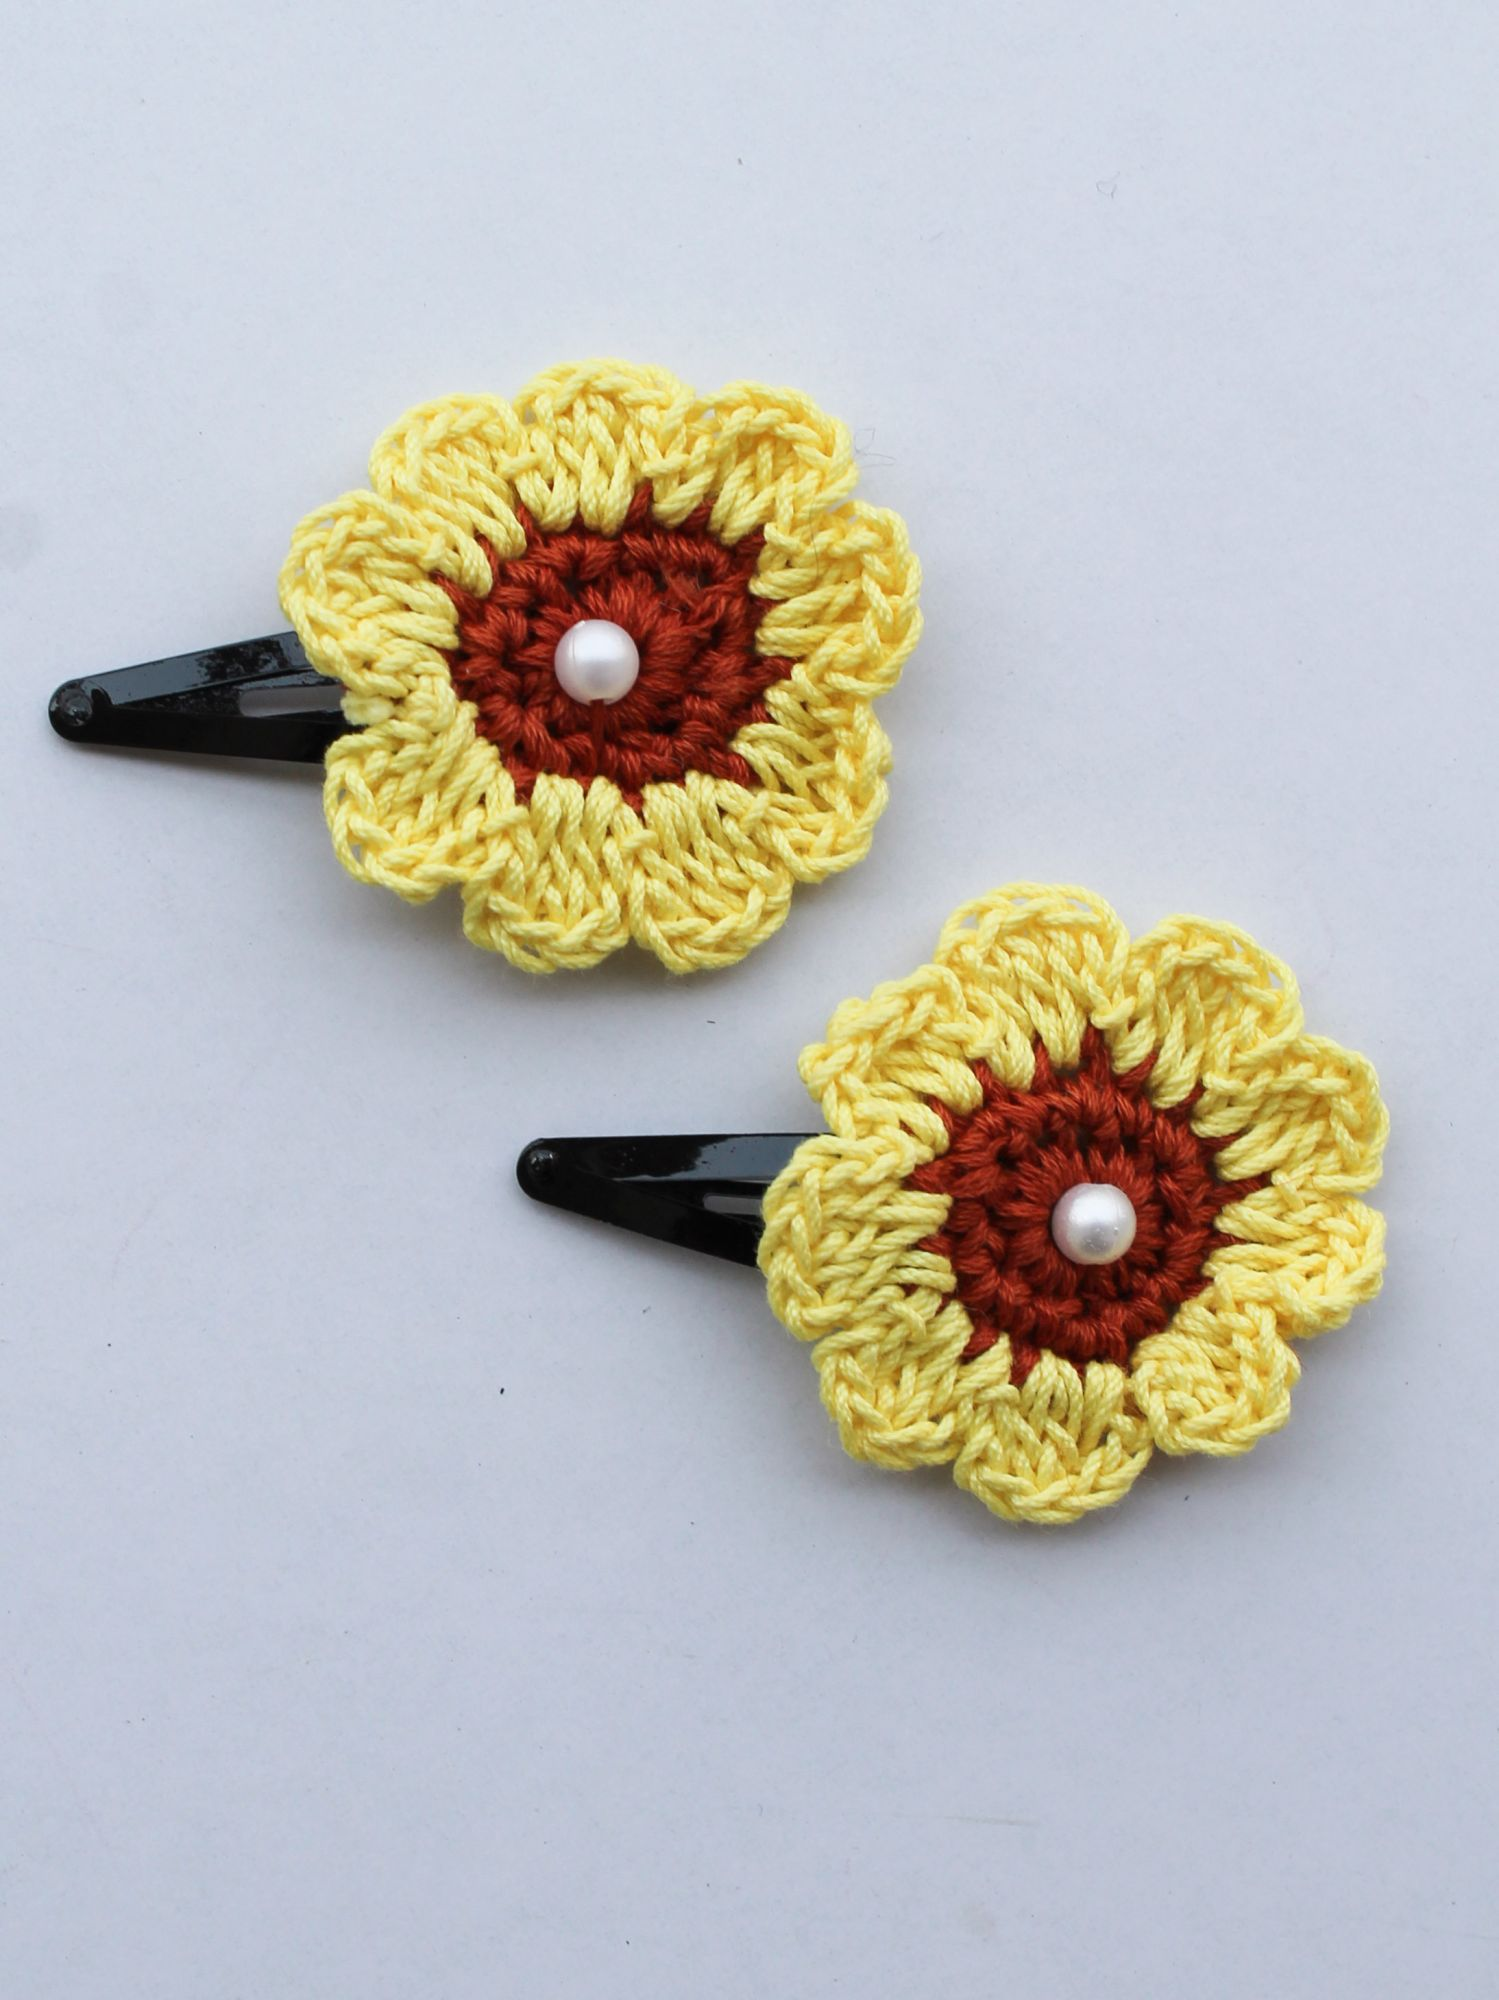 Handmade Crochet Pearl Sunflower Tic Tac Hair Pins for Girls - Yellow